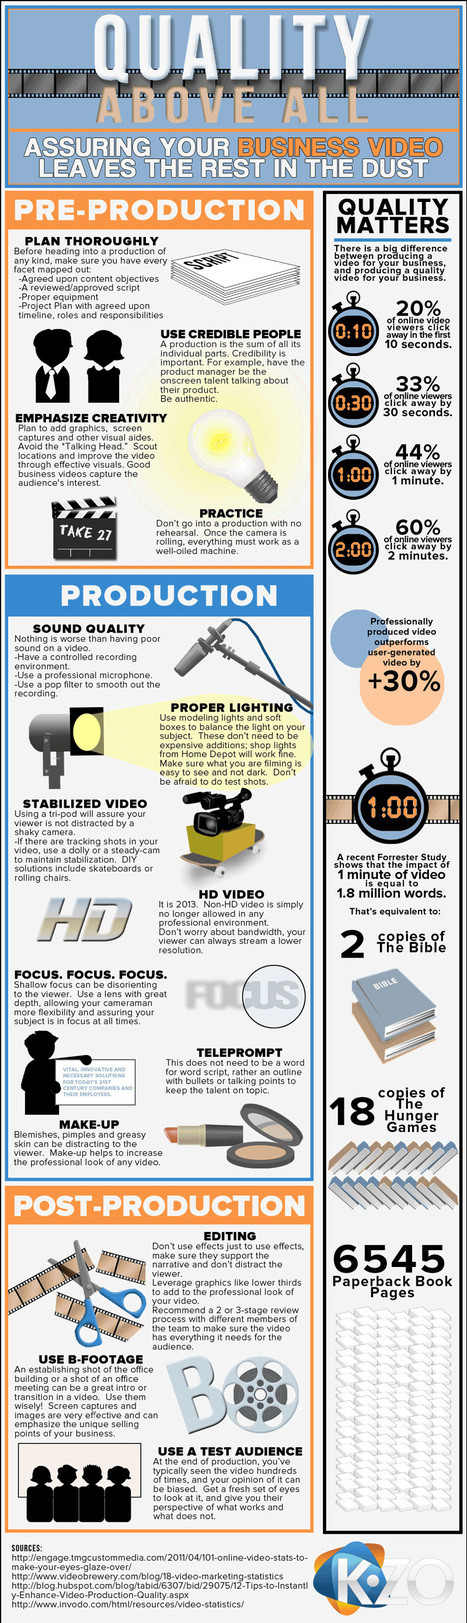 How To: Create A Successful Business Marketing Video [Infographic] | humour | Scoop.it